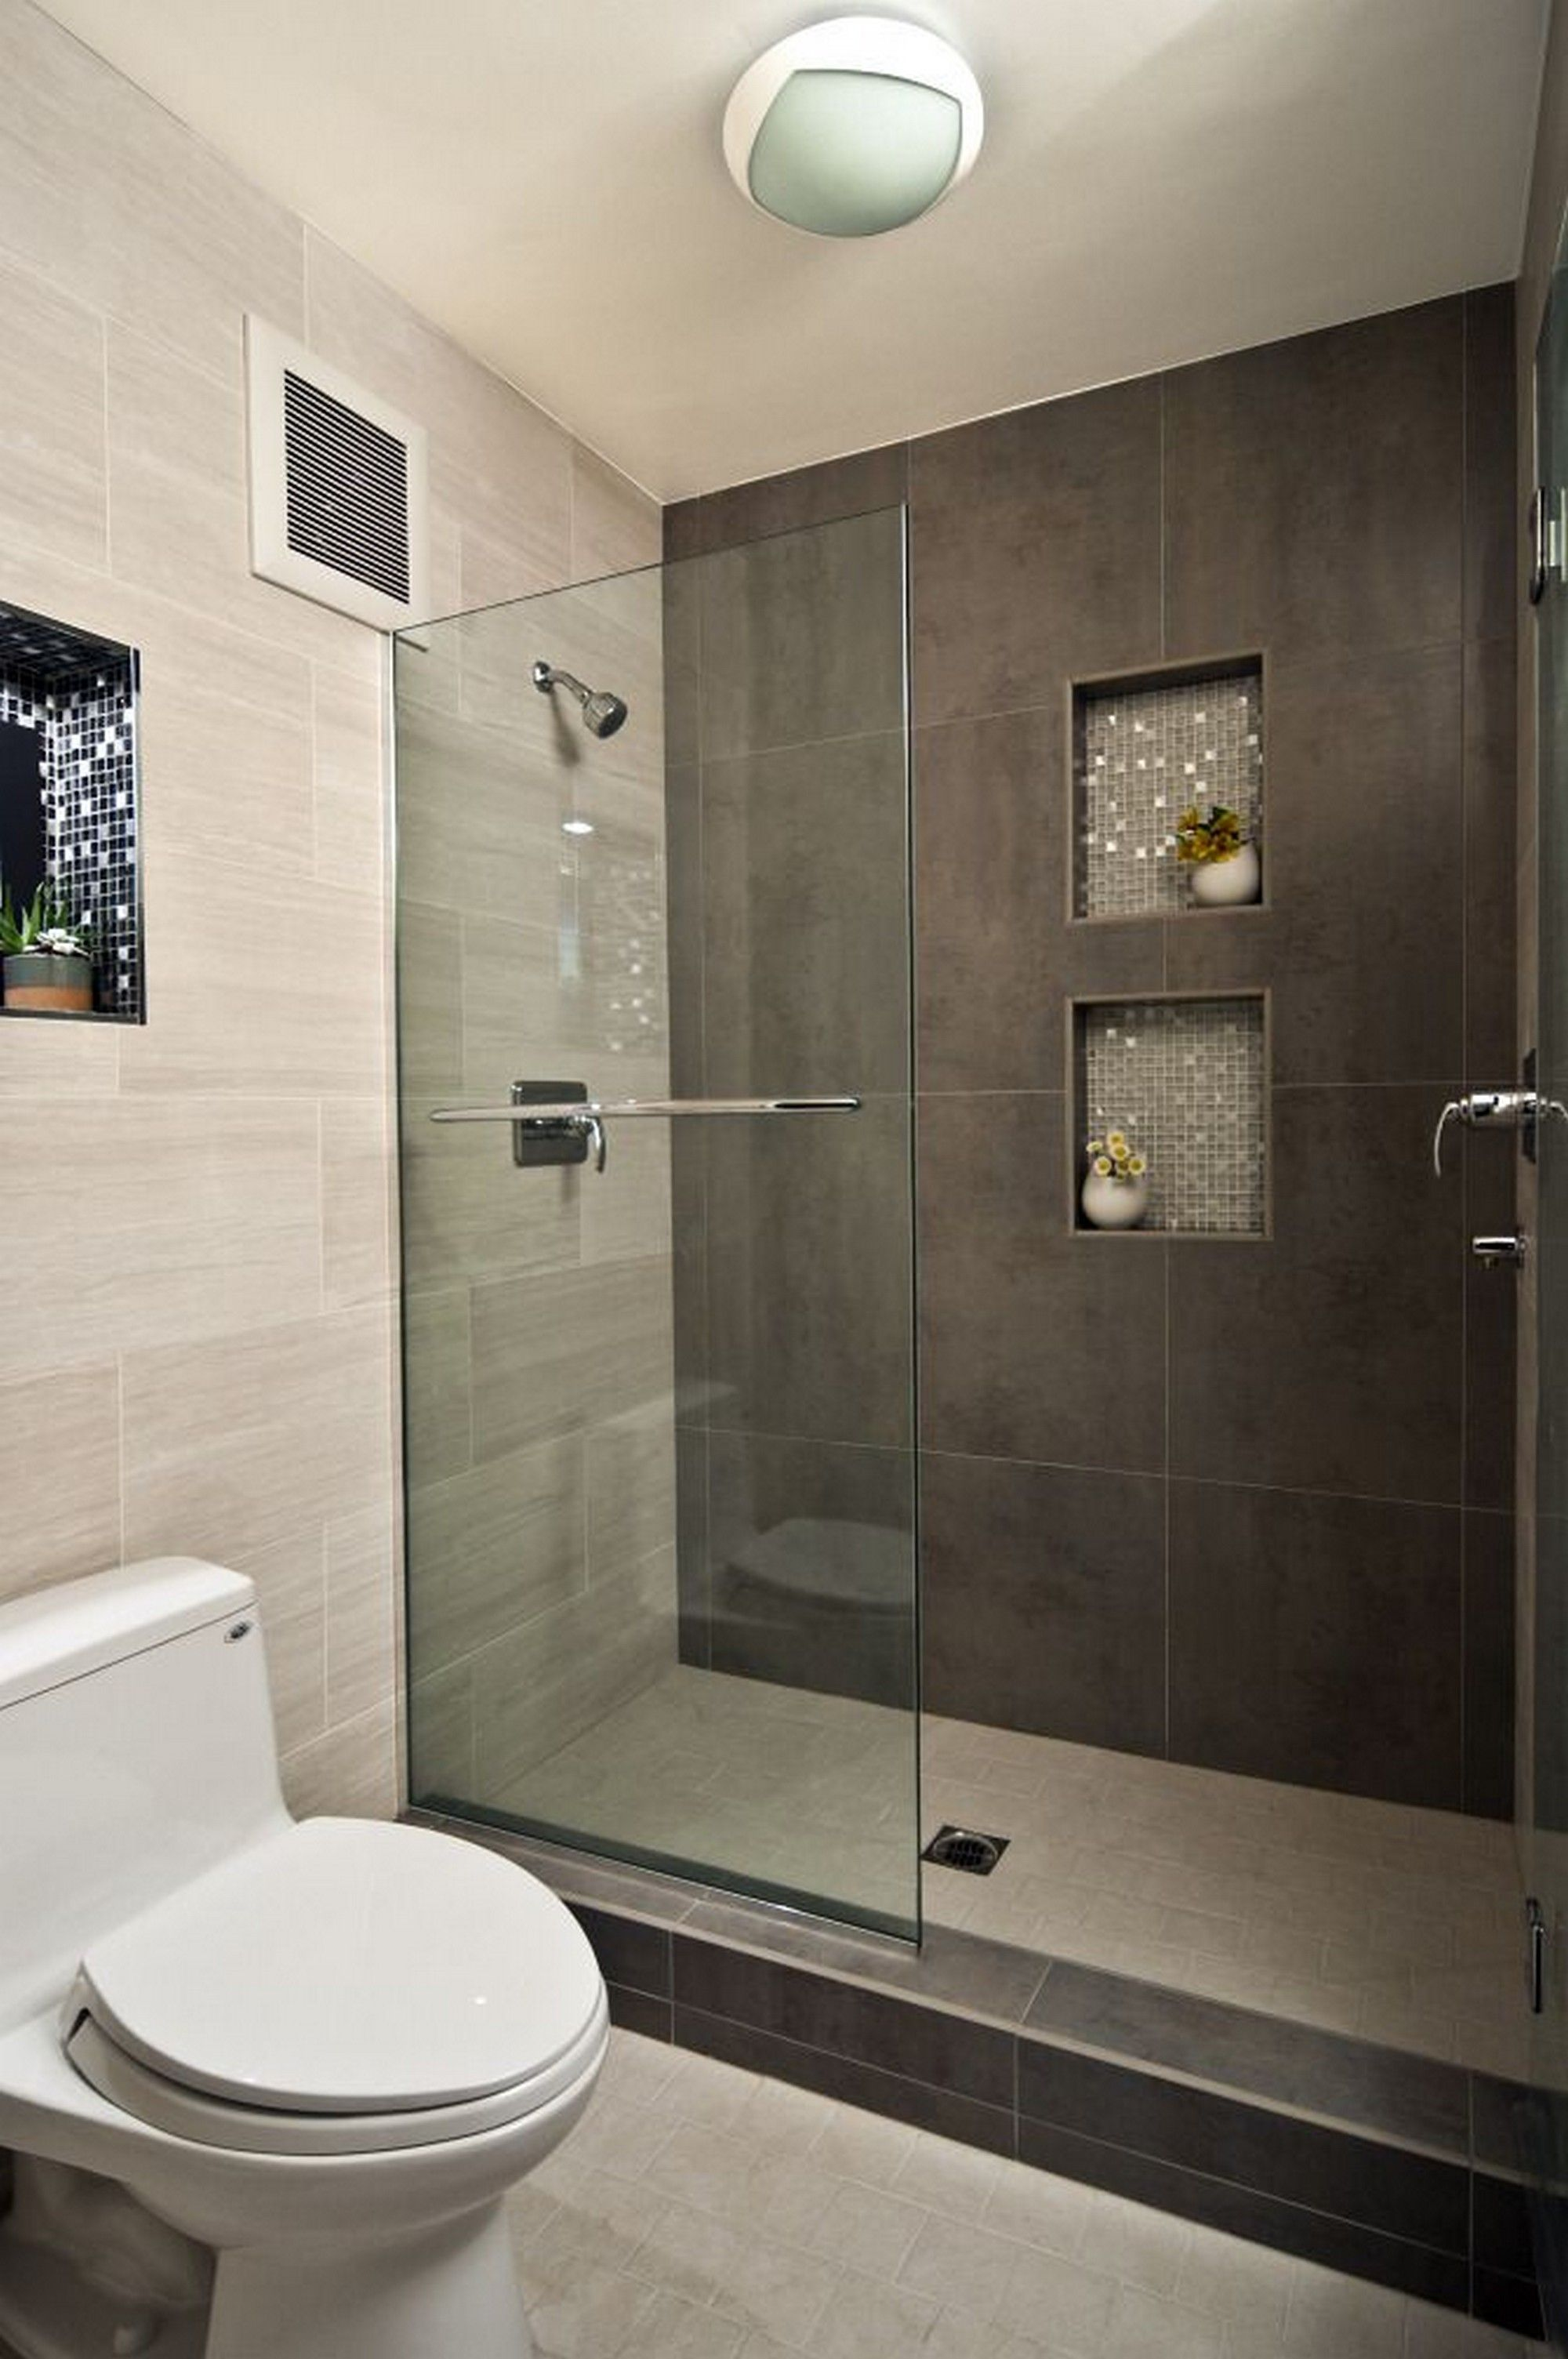 Modern Bathroom Design Ideas With Walk In Shower Interior Vogue Alcove Toilet Bathtub